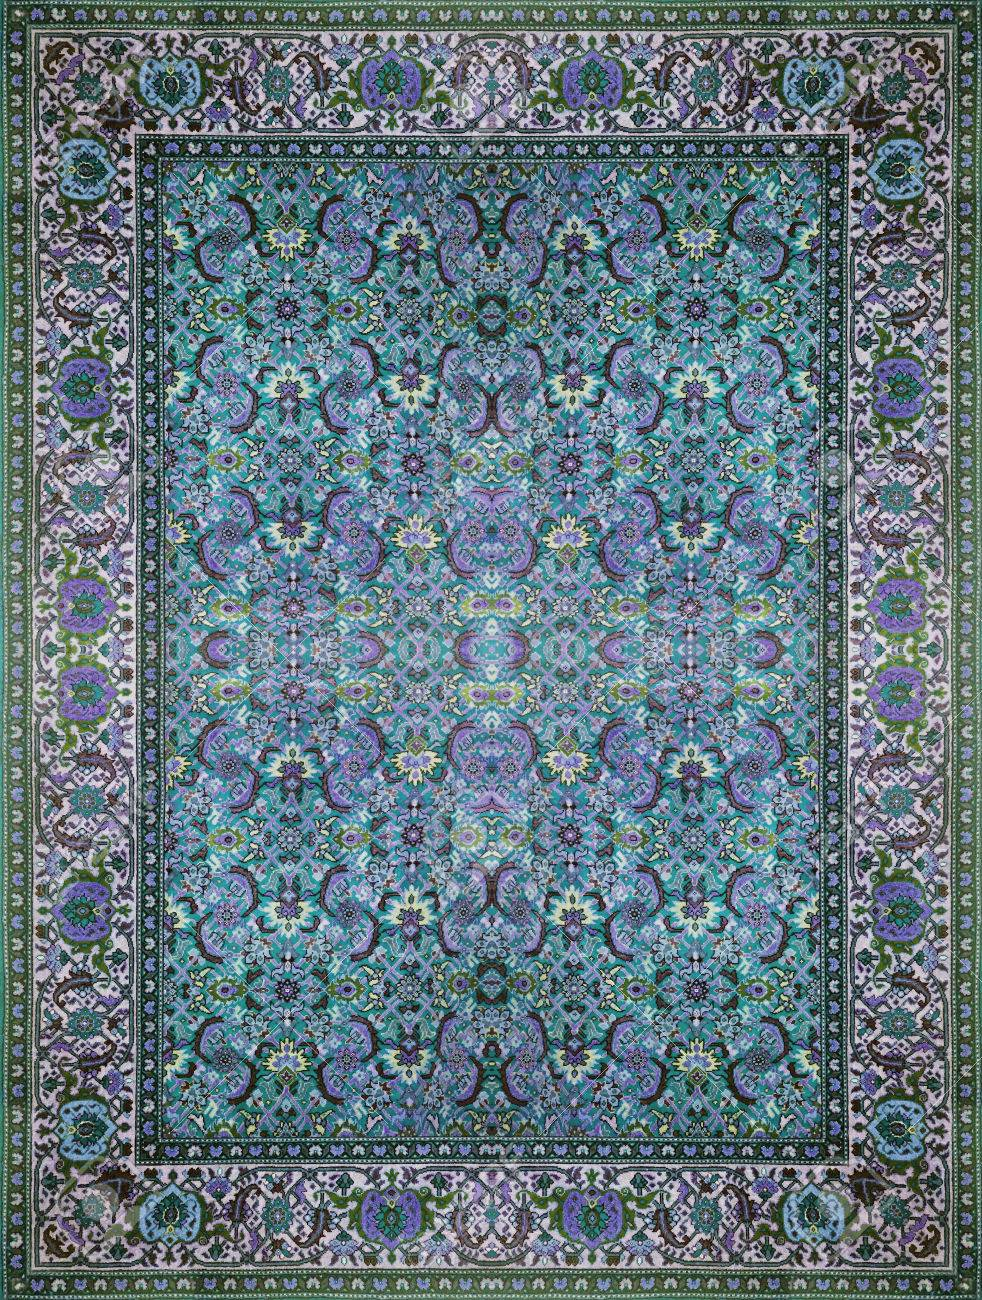 Blue Carpet Texture : carpet, texture, Persian, Carpet, Texture,, Abstract, Ornament., Round, Mandala, Pattern,.., Stock, Photo,, Picture, Royalty, Image., Image, 72112137.